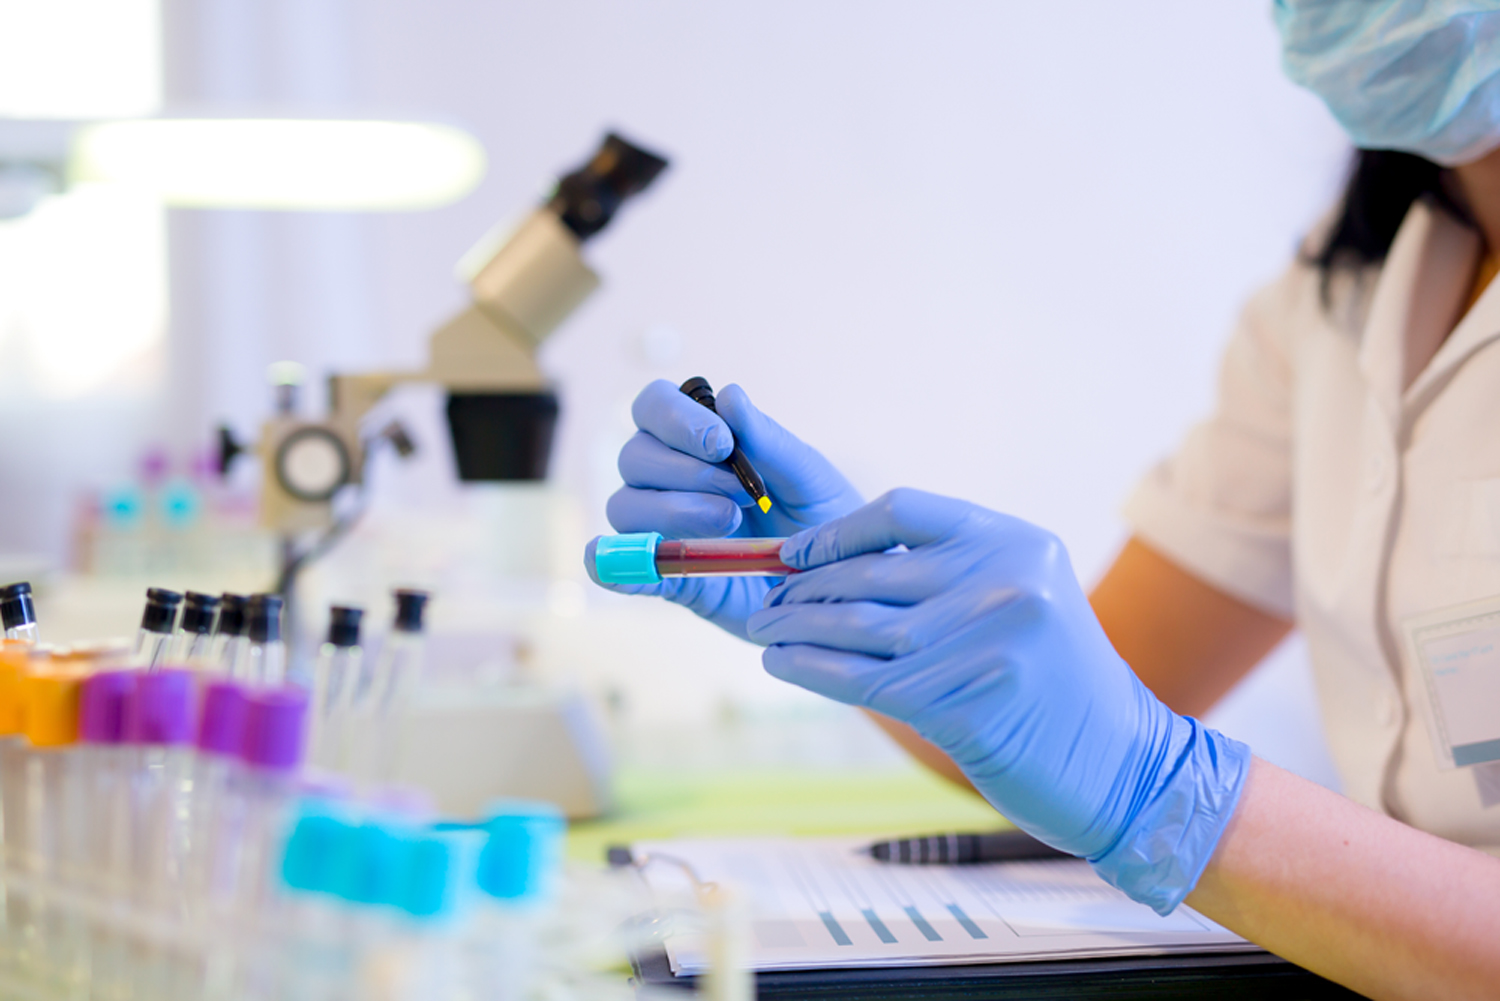 Researcher marking a test tube containing a blood sample in a medical laboratory, with a microscope in the background and other test tubes in the foreground.